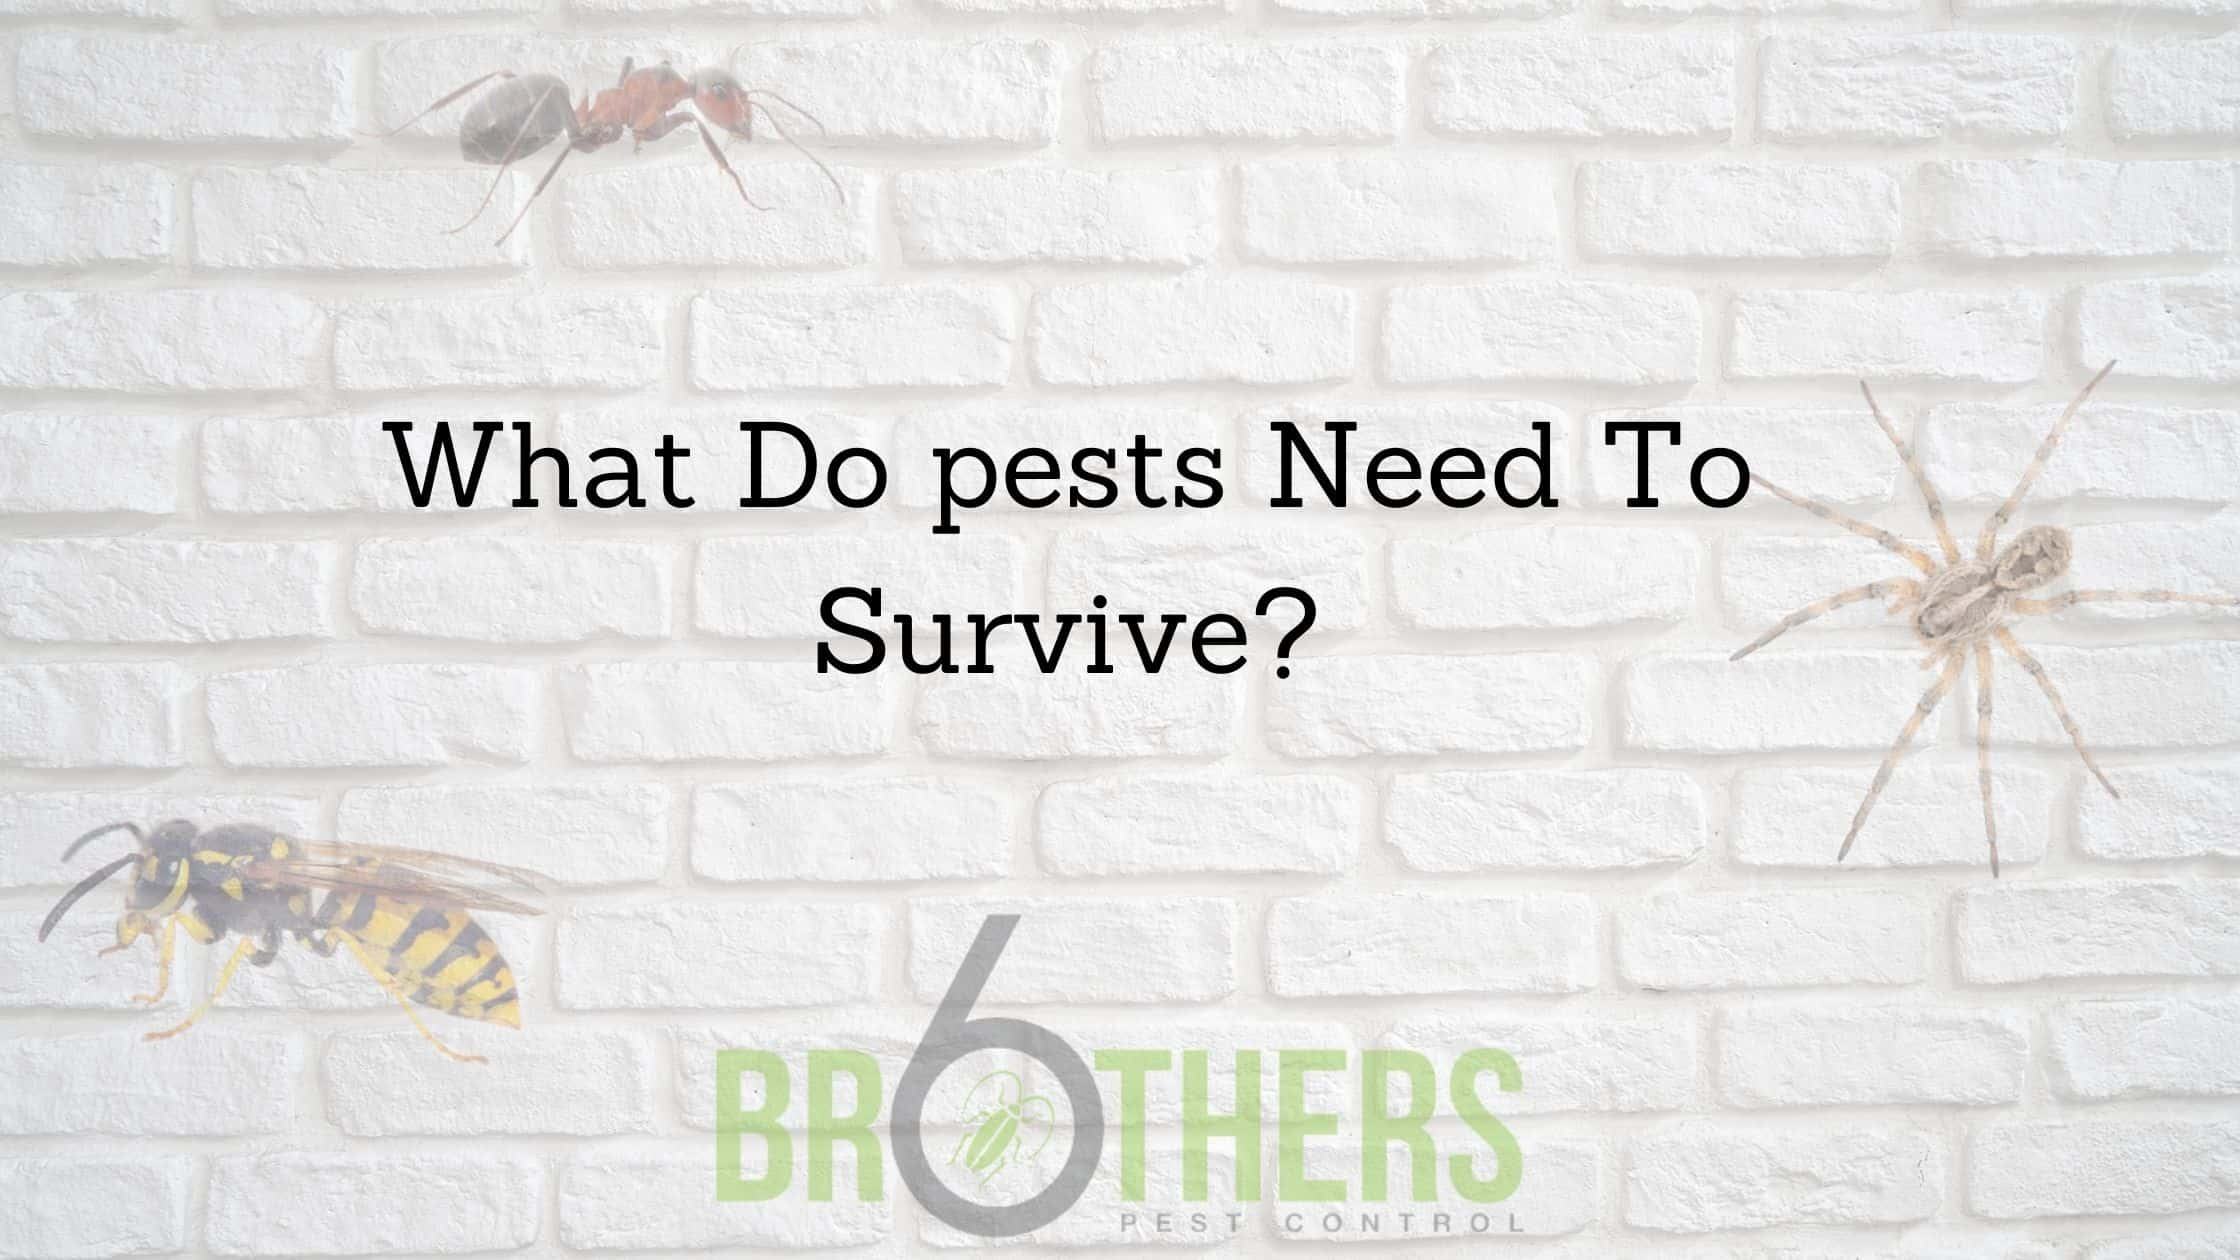 What Do pests Need To Survive?